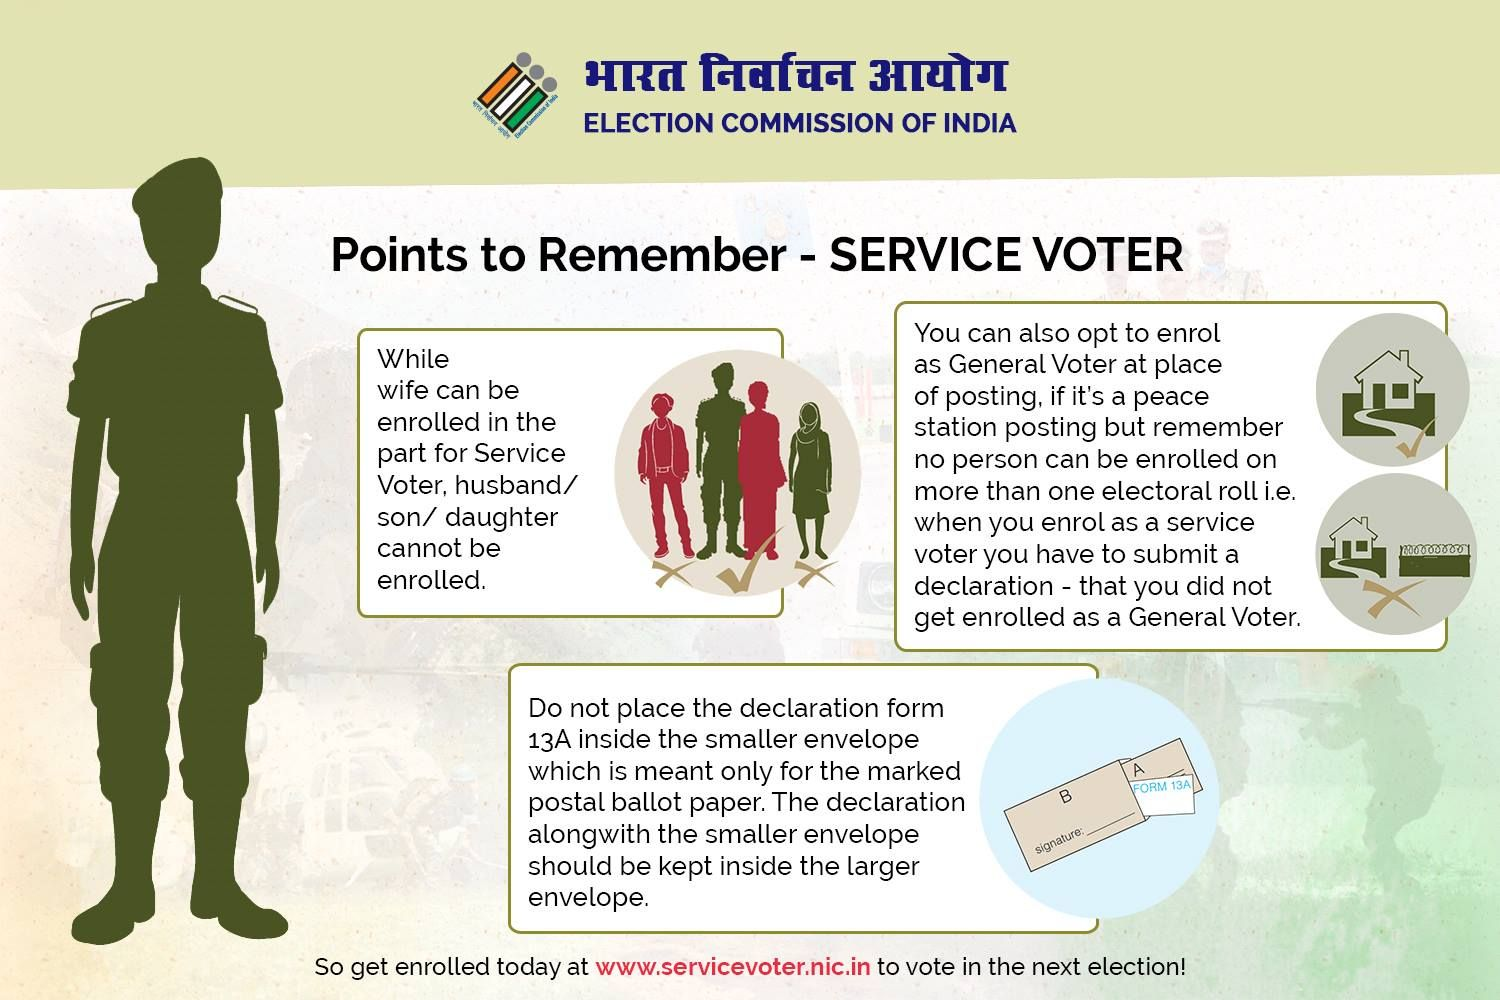 Points to remember for Service Voter.